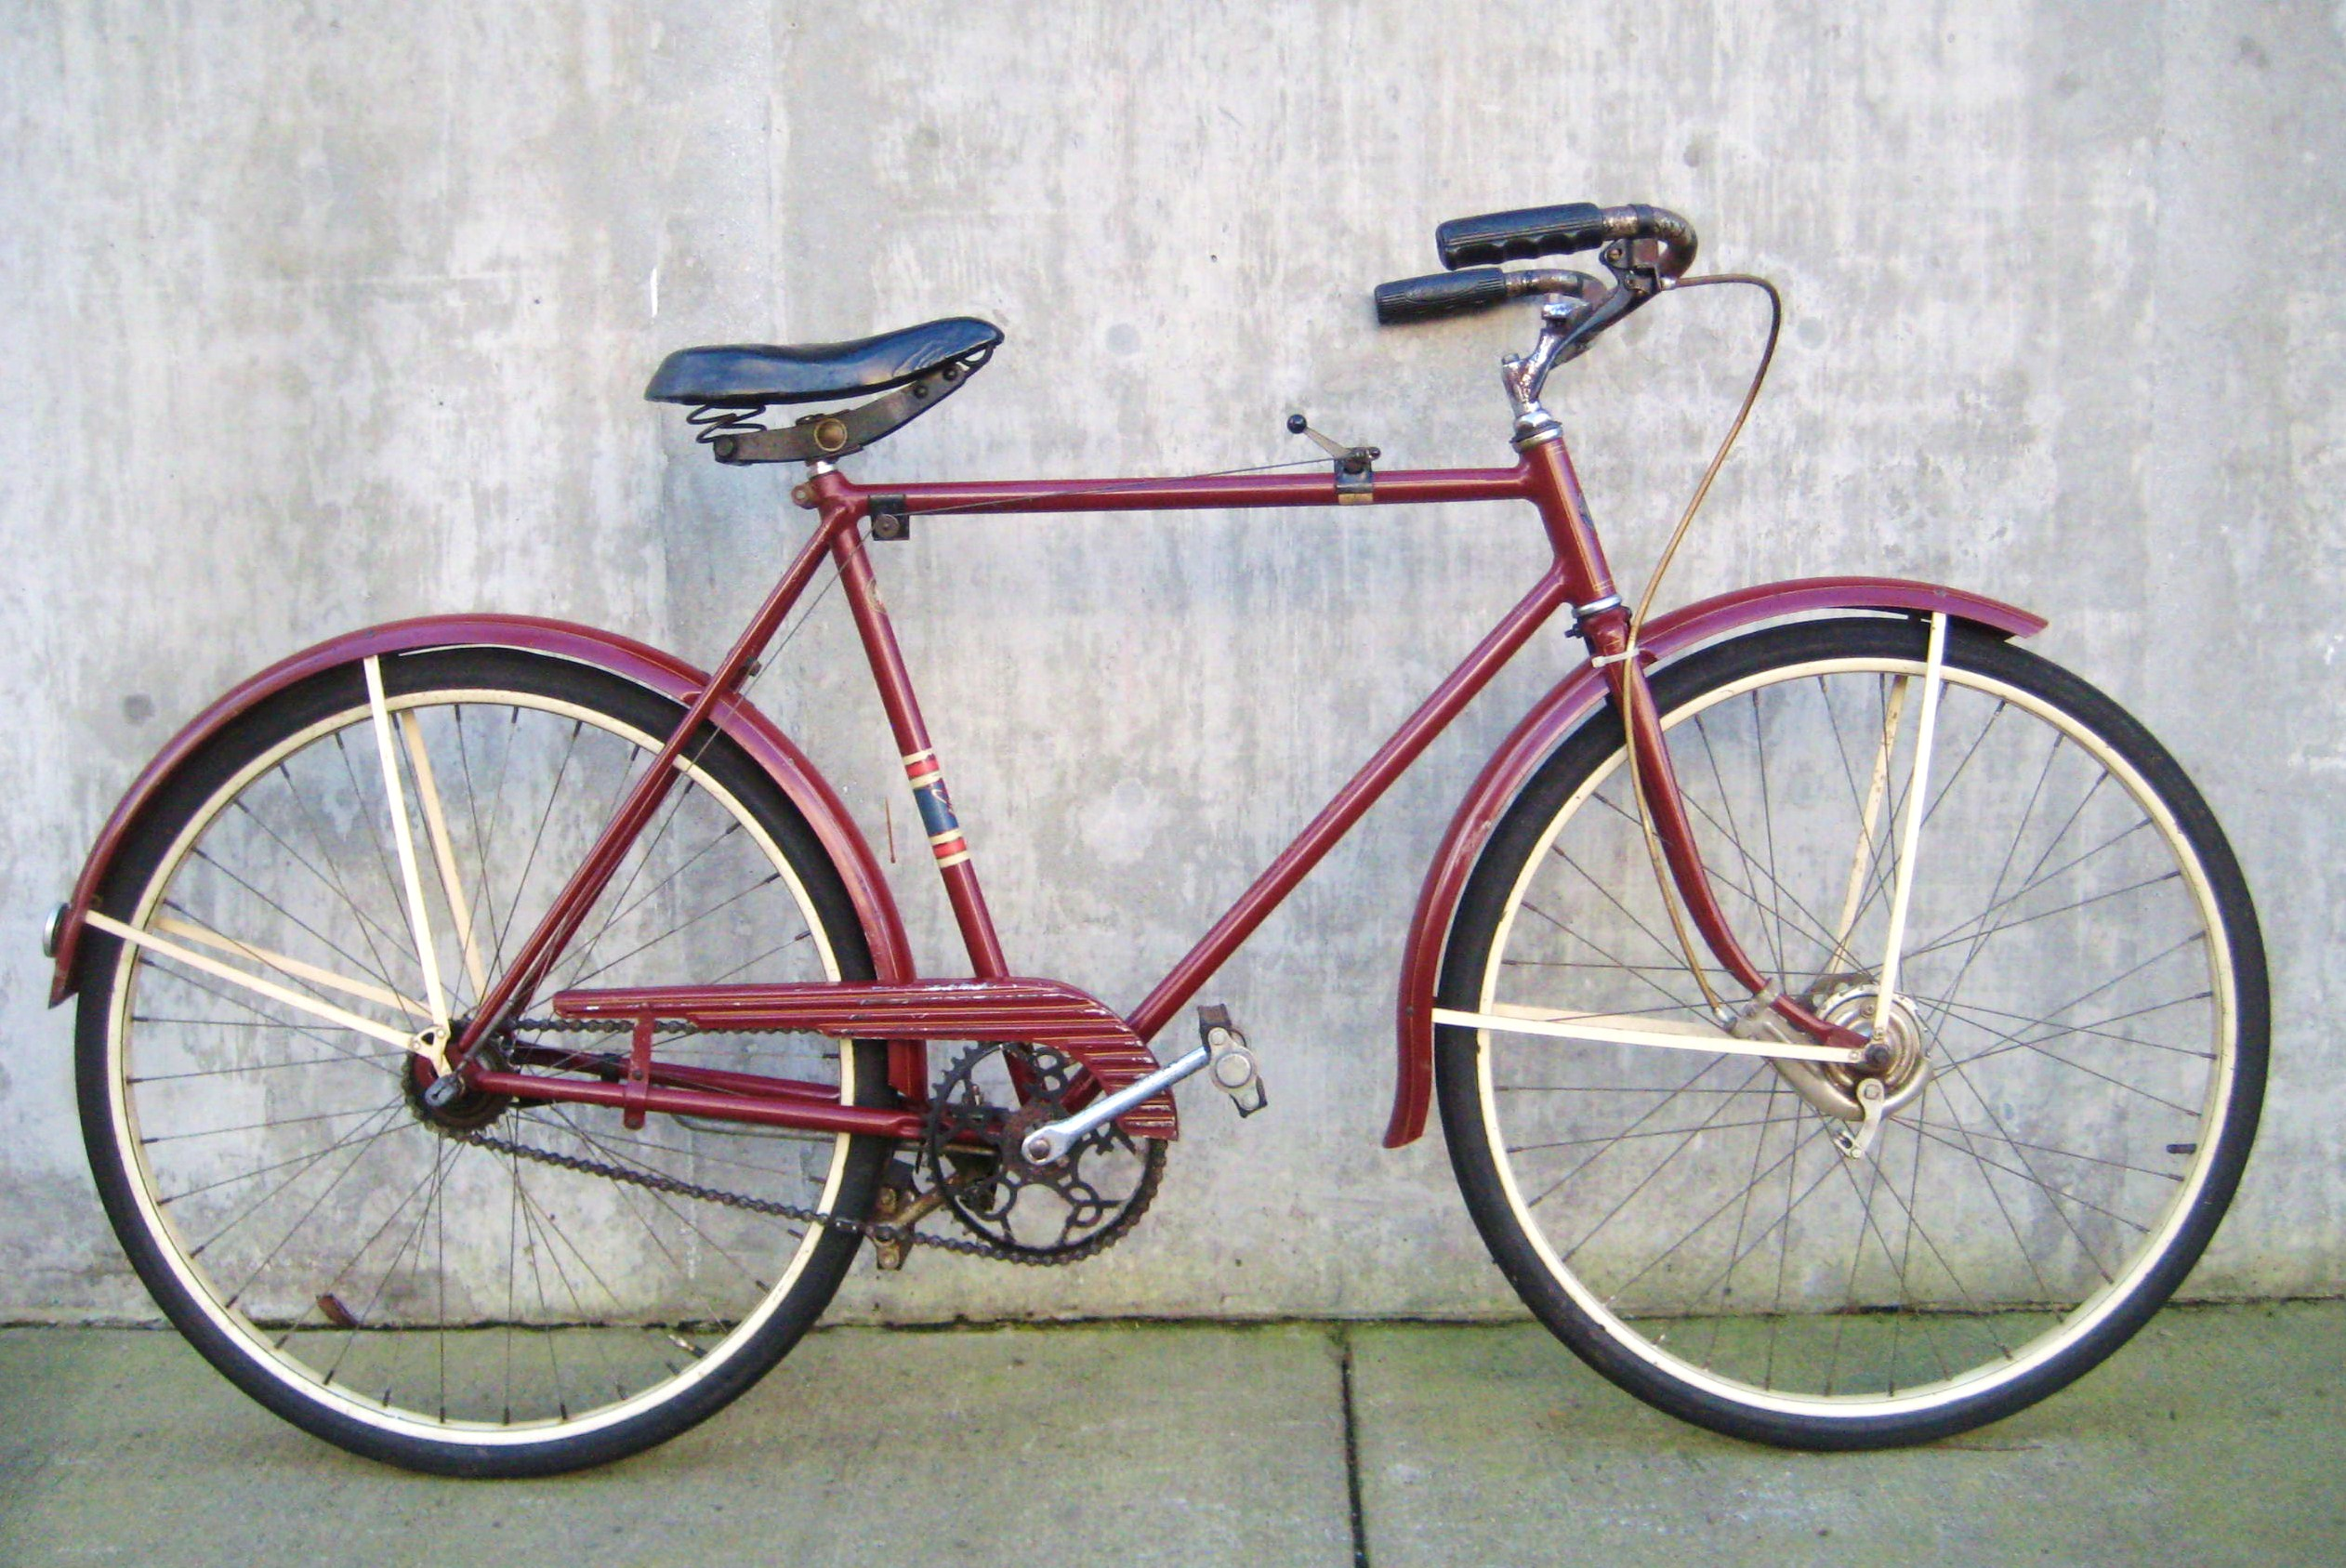 1945 Schwinn New World bicycle at Classic Cycle | Classic Cycle ...